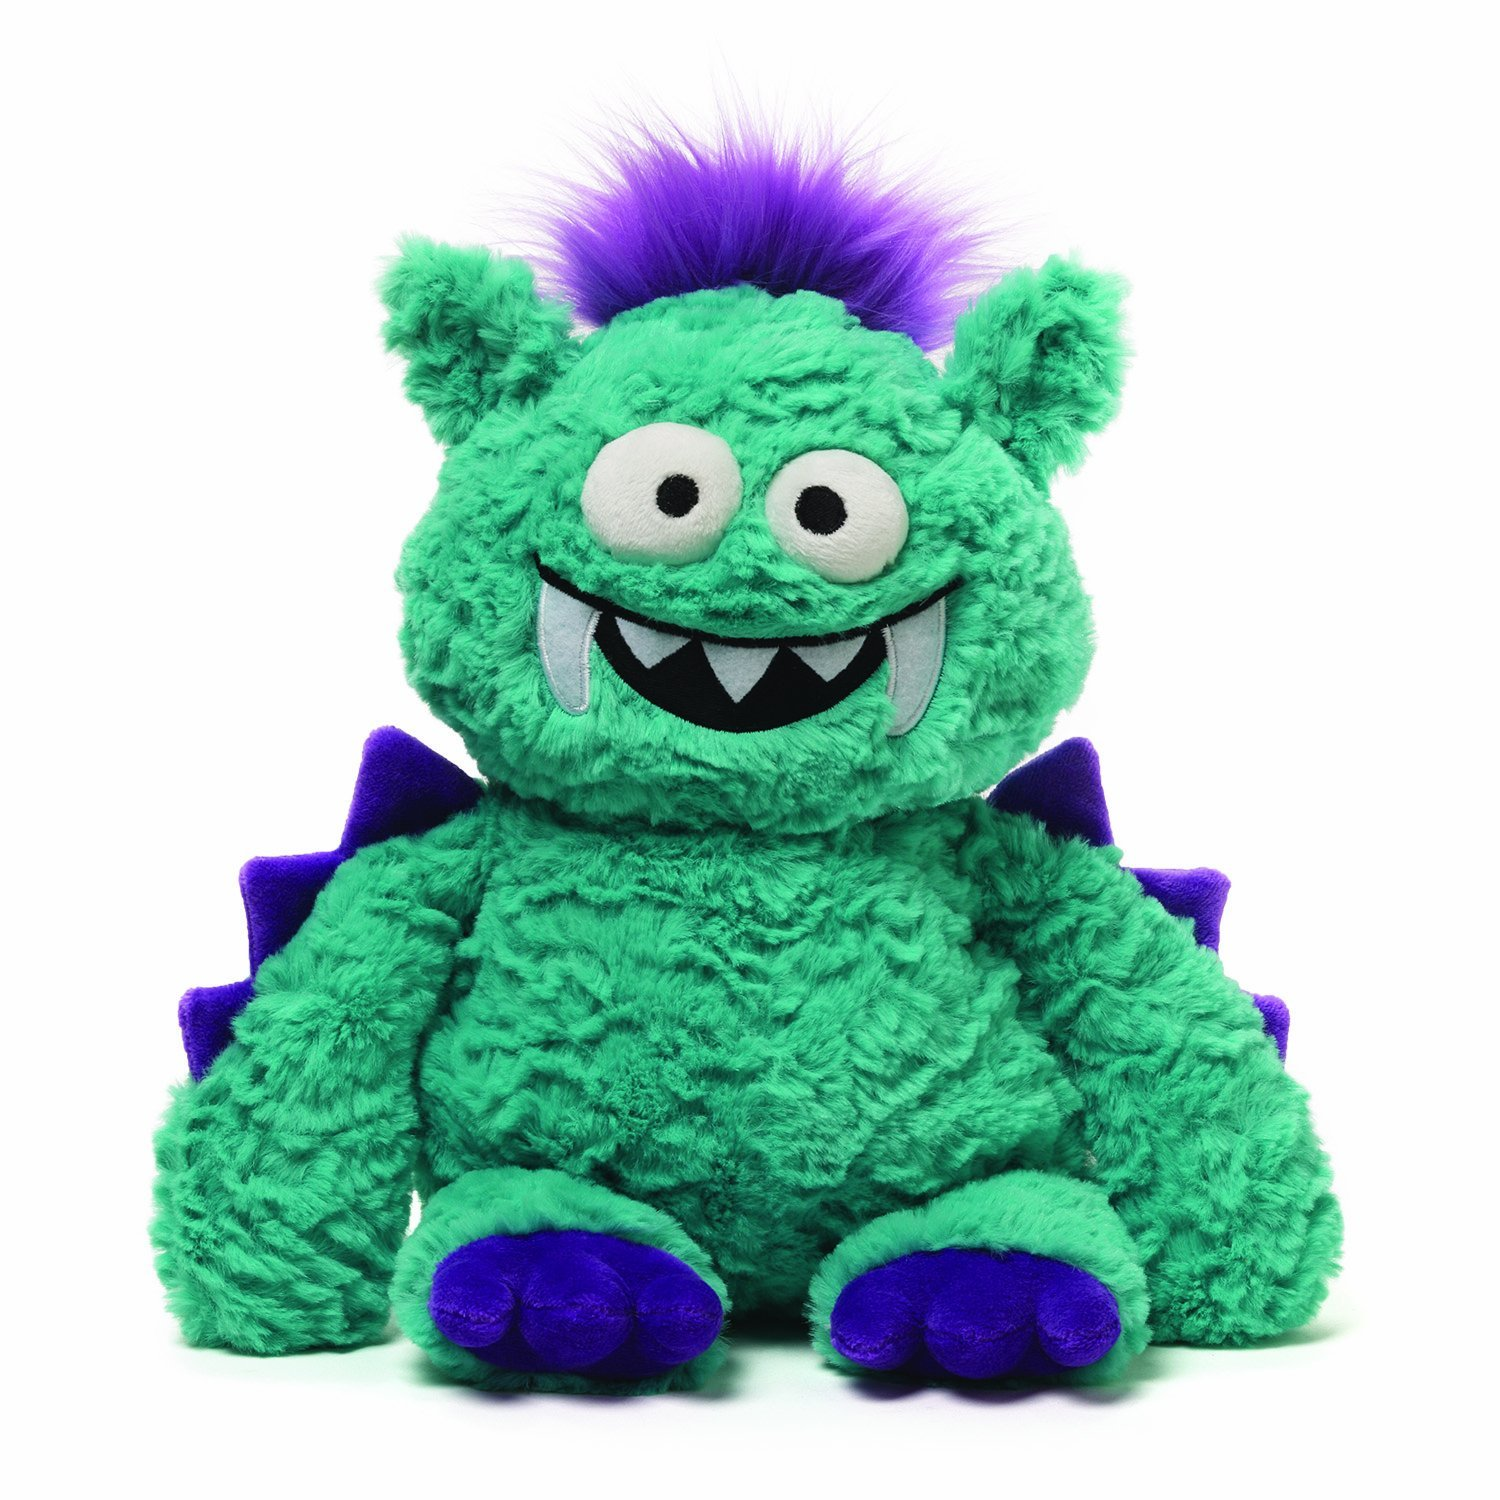 Green fluffy toy photo